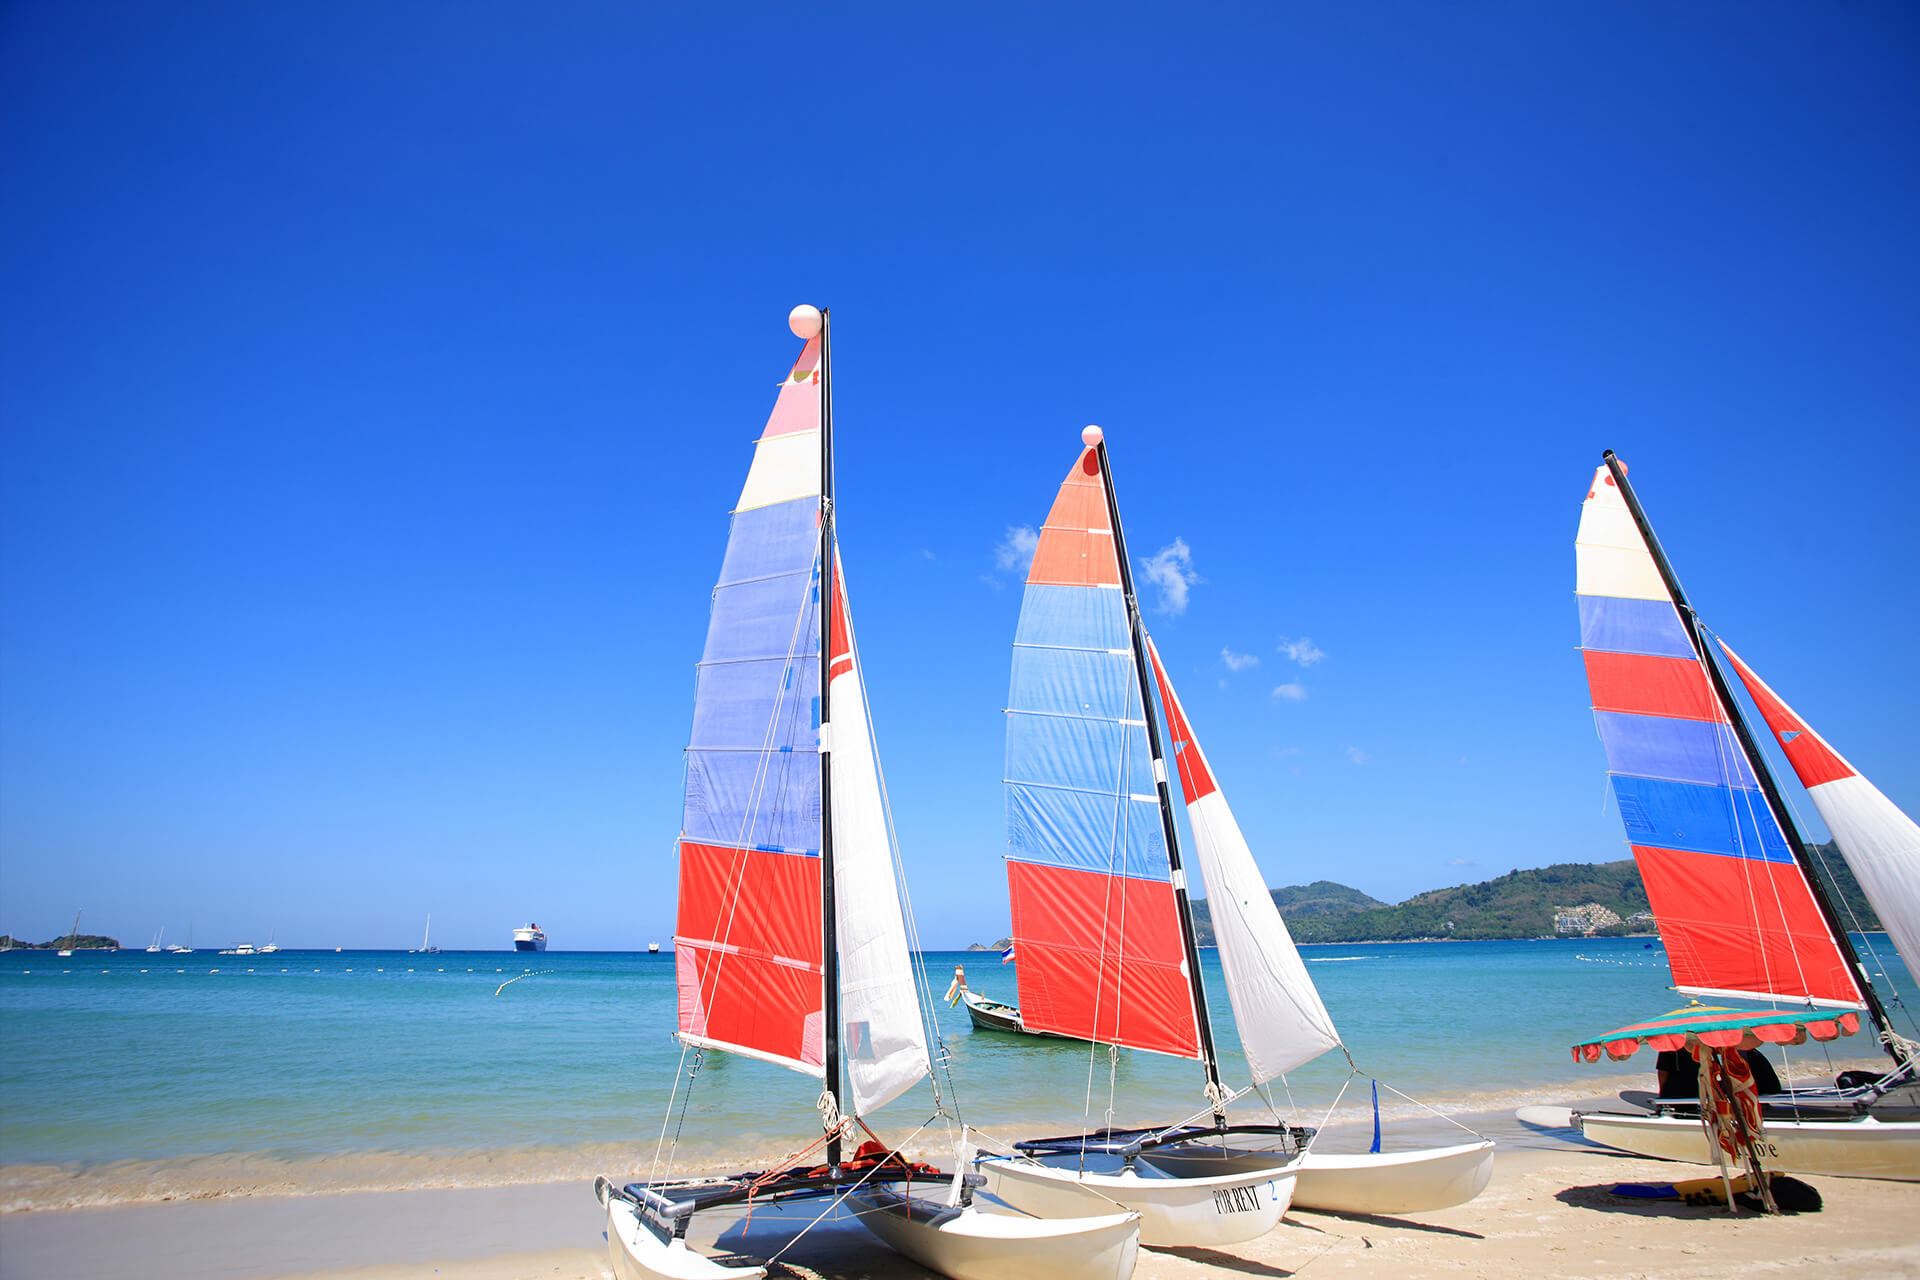 patong_GettyImages-177246015